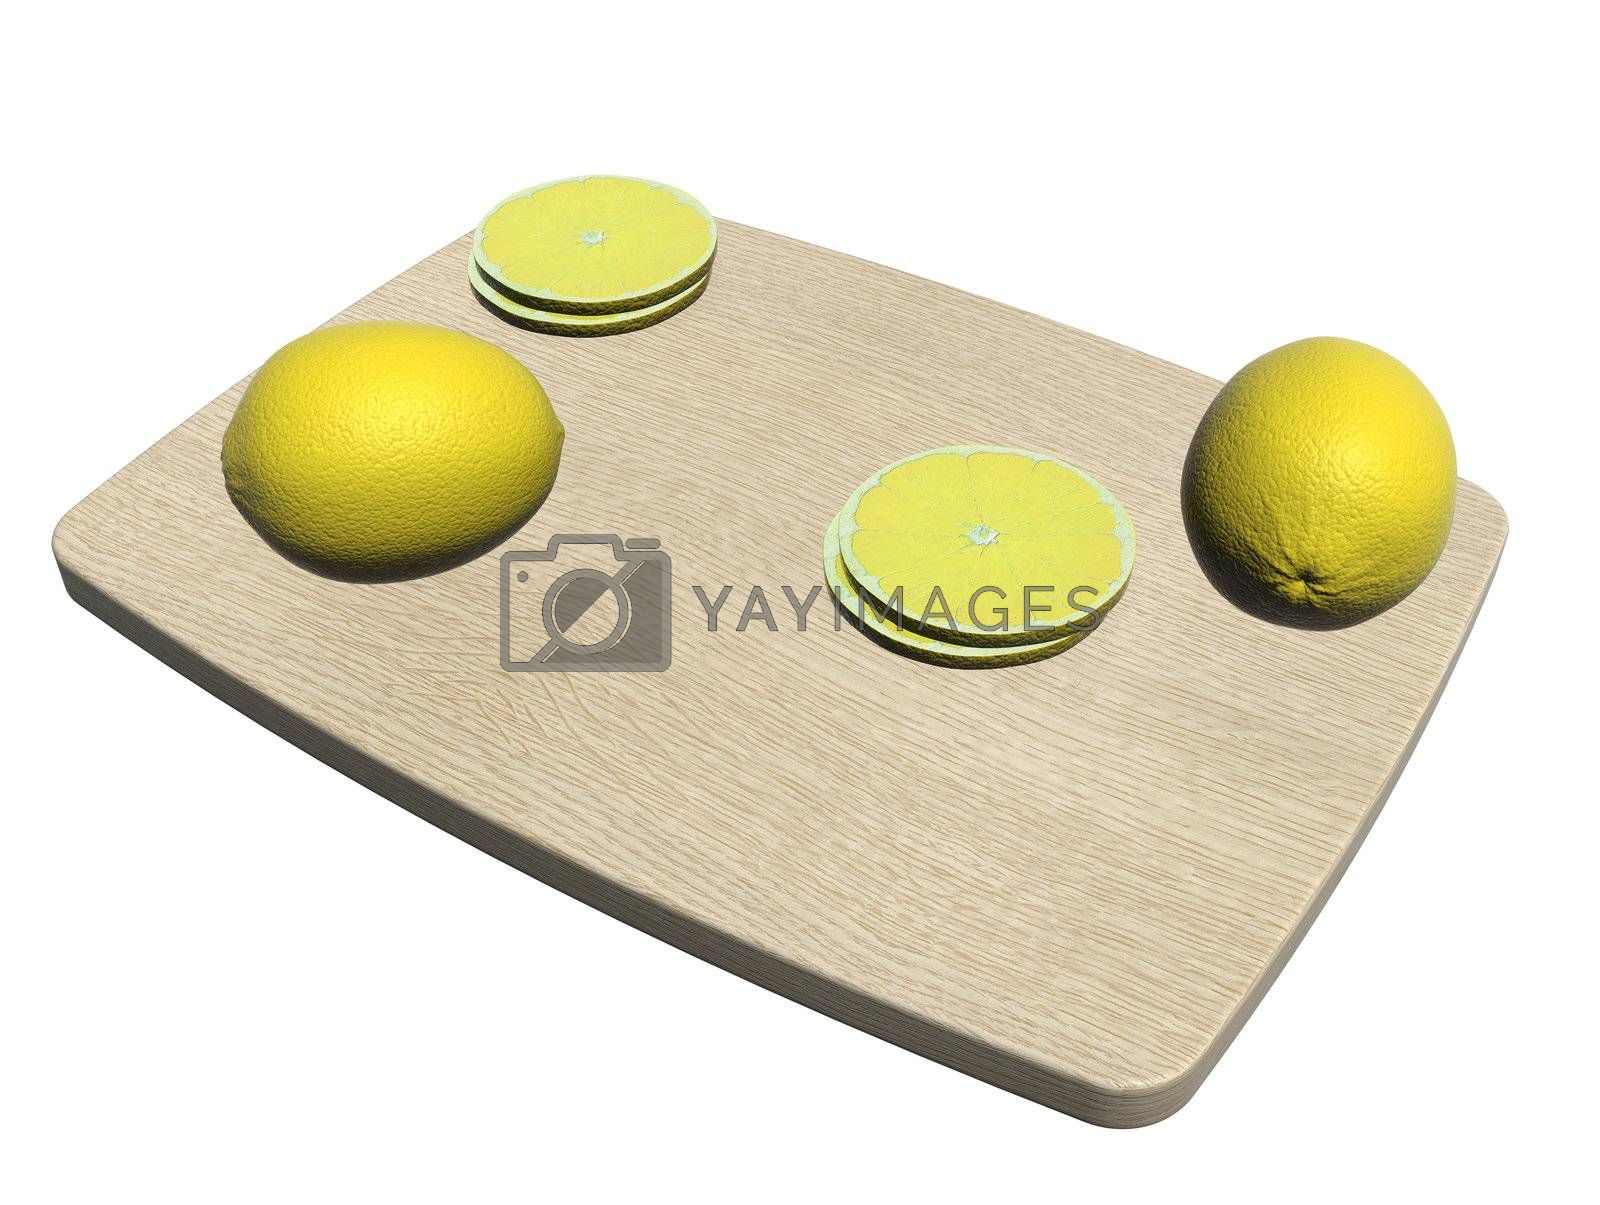 Rectangular wooden utting board with whole and sliced lemon, 3d illustration, isolated against a white background